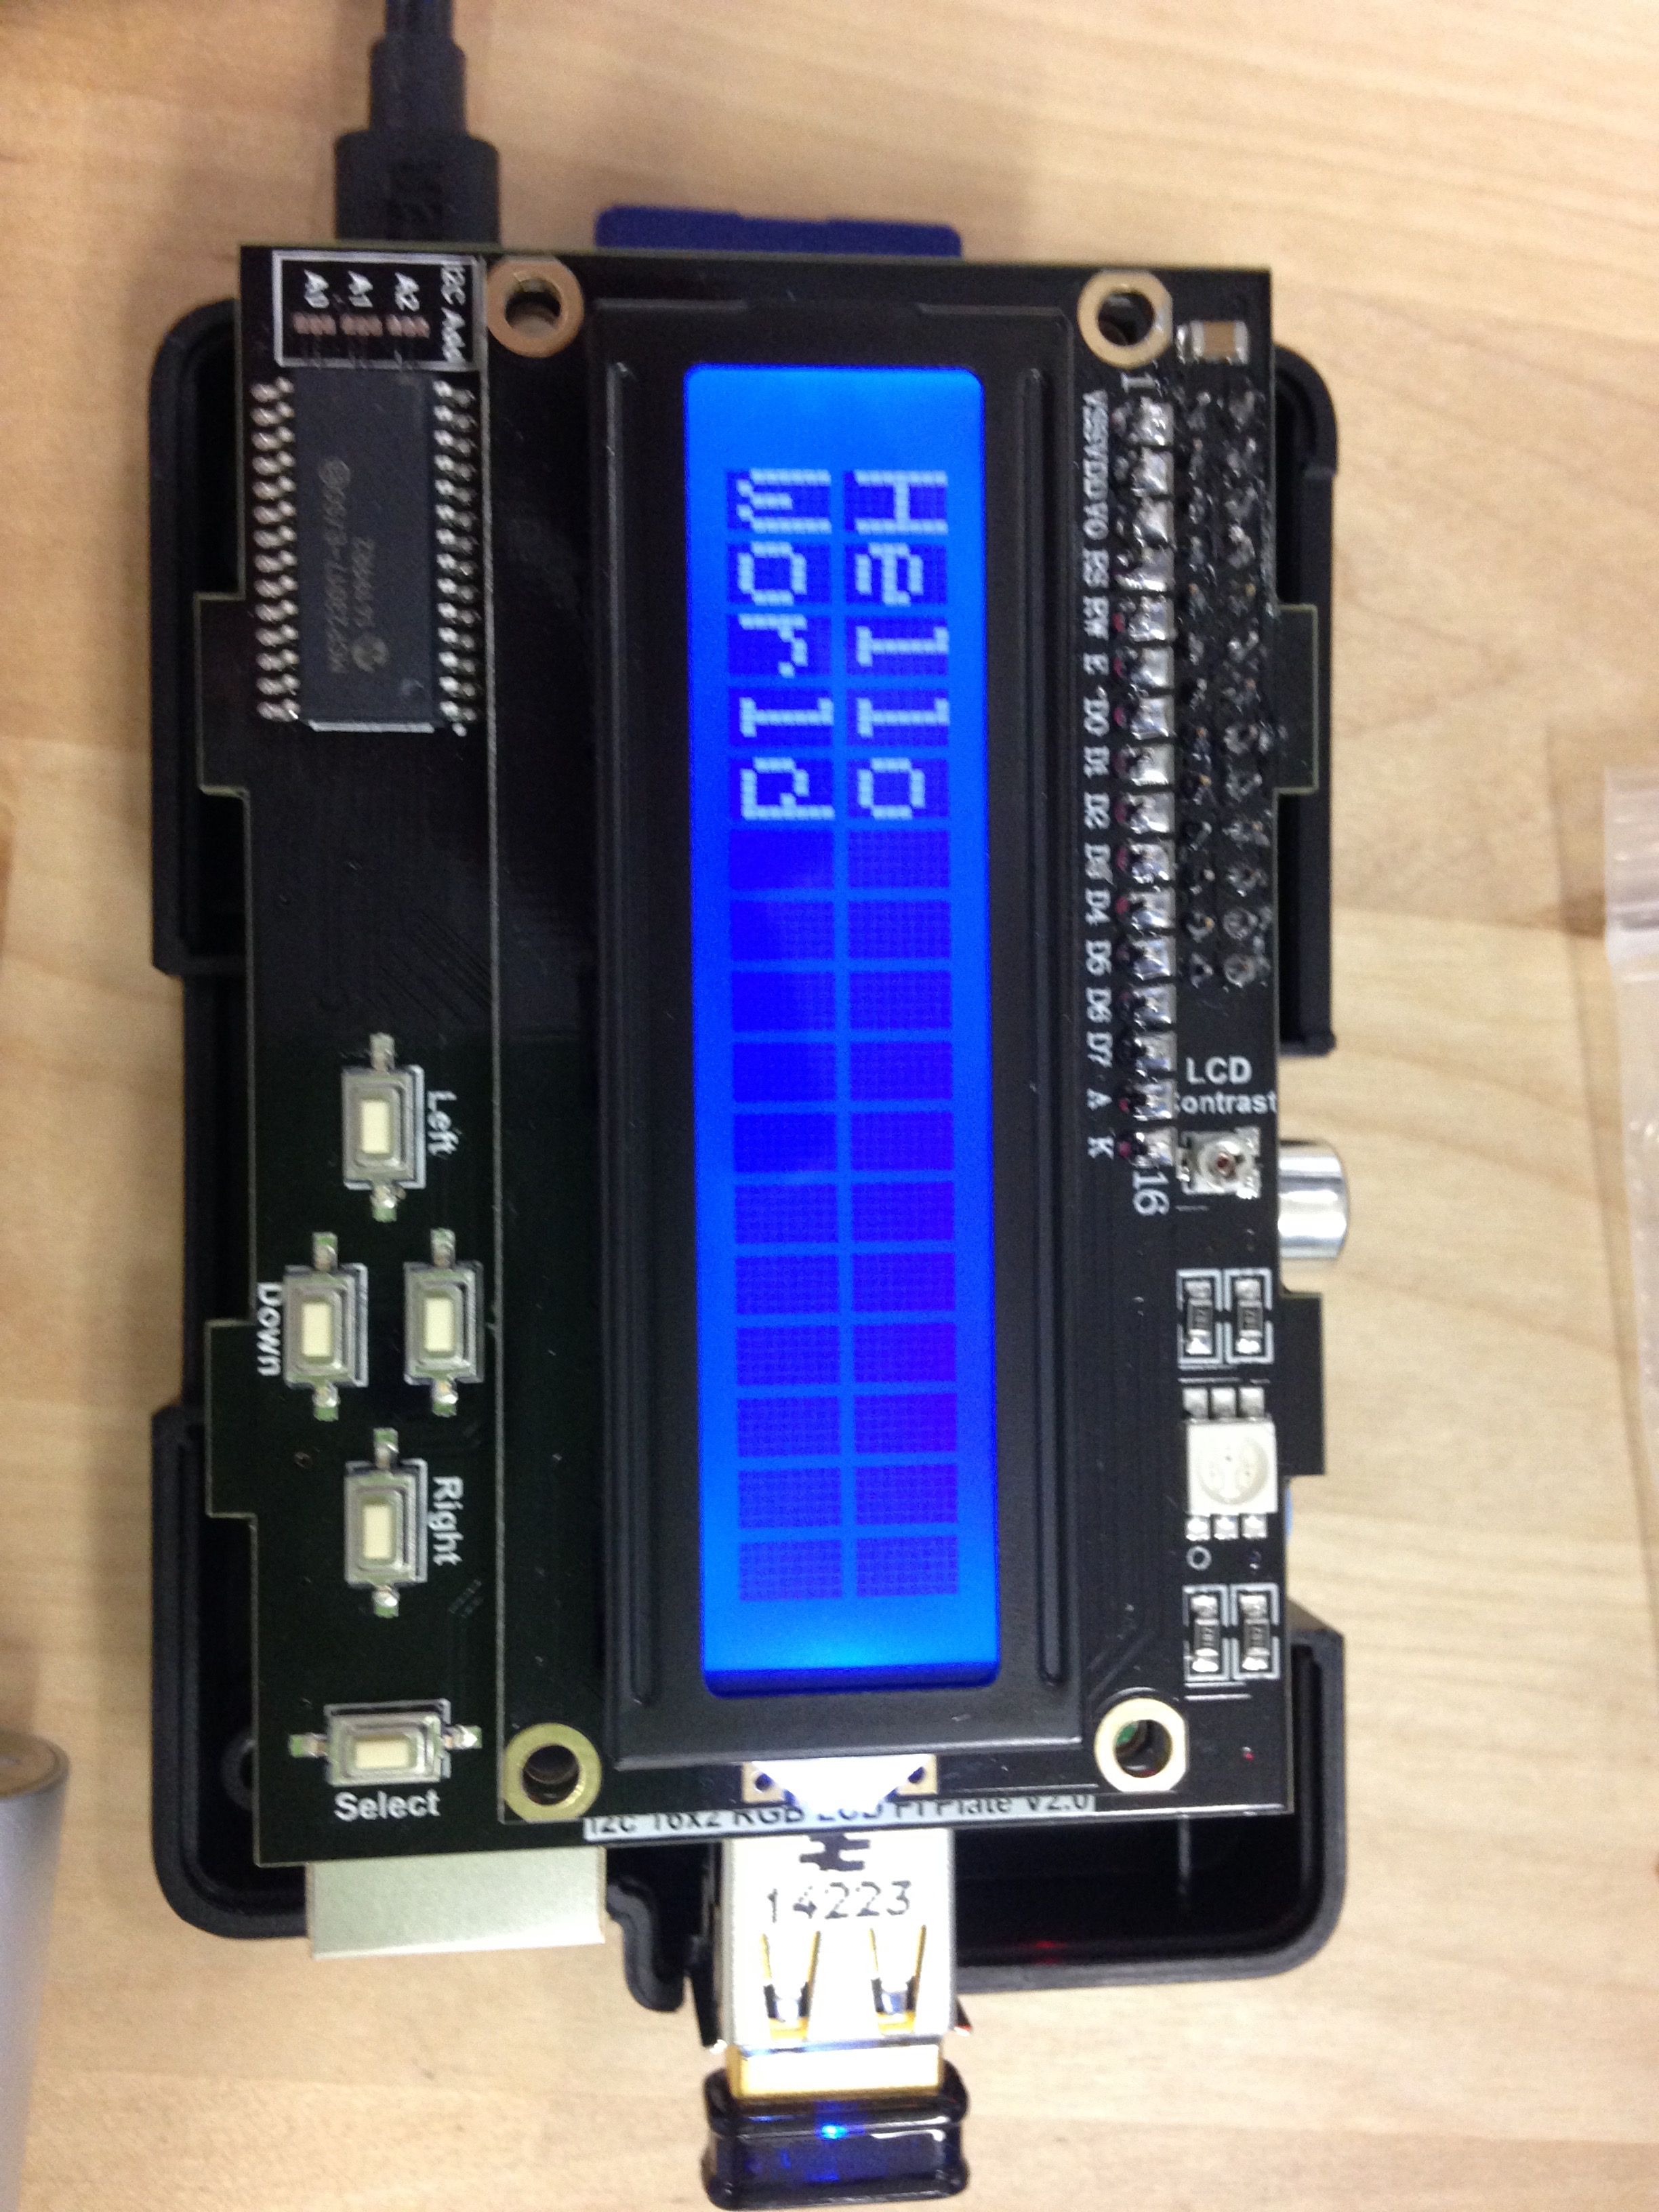 A Hello World message on an LCD display